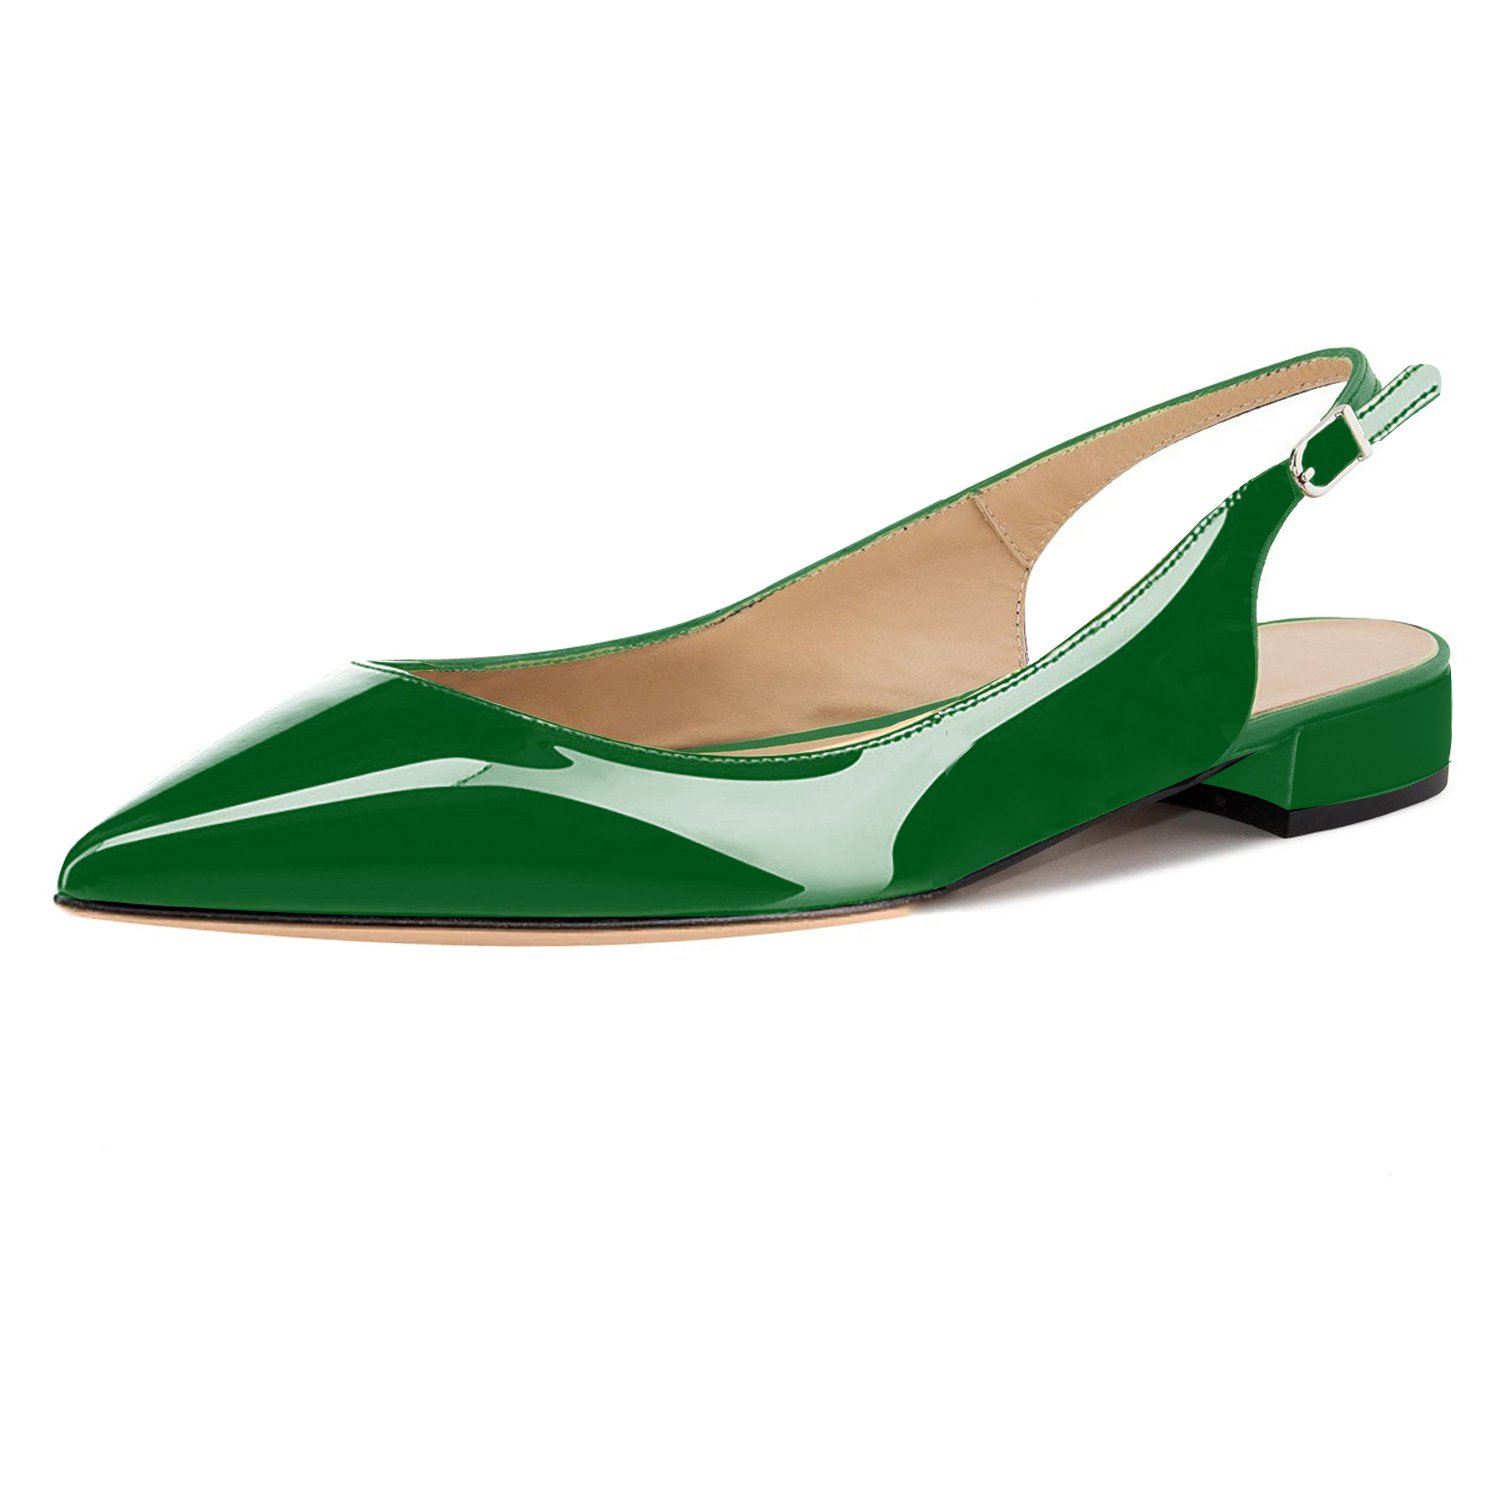 Eldof Women Low Heels Pumps | Pointed Toe Slingback Flat Pumps | 2cm Classic Elegante Court Shoes B07C4PBY8M 8 B(M) US|Patent Green